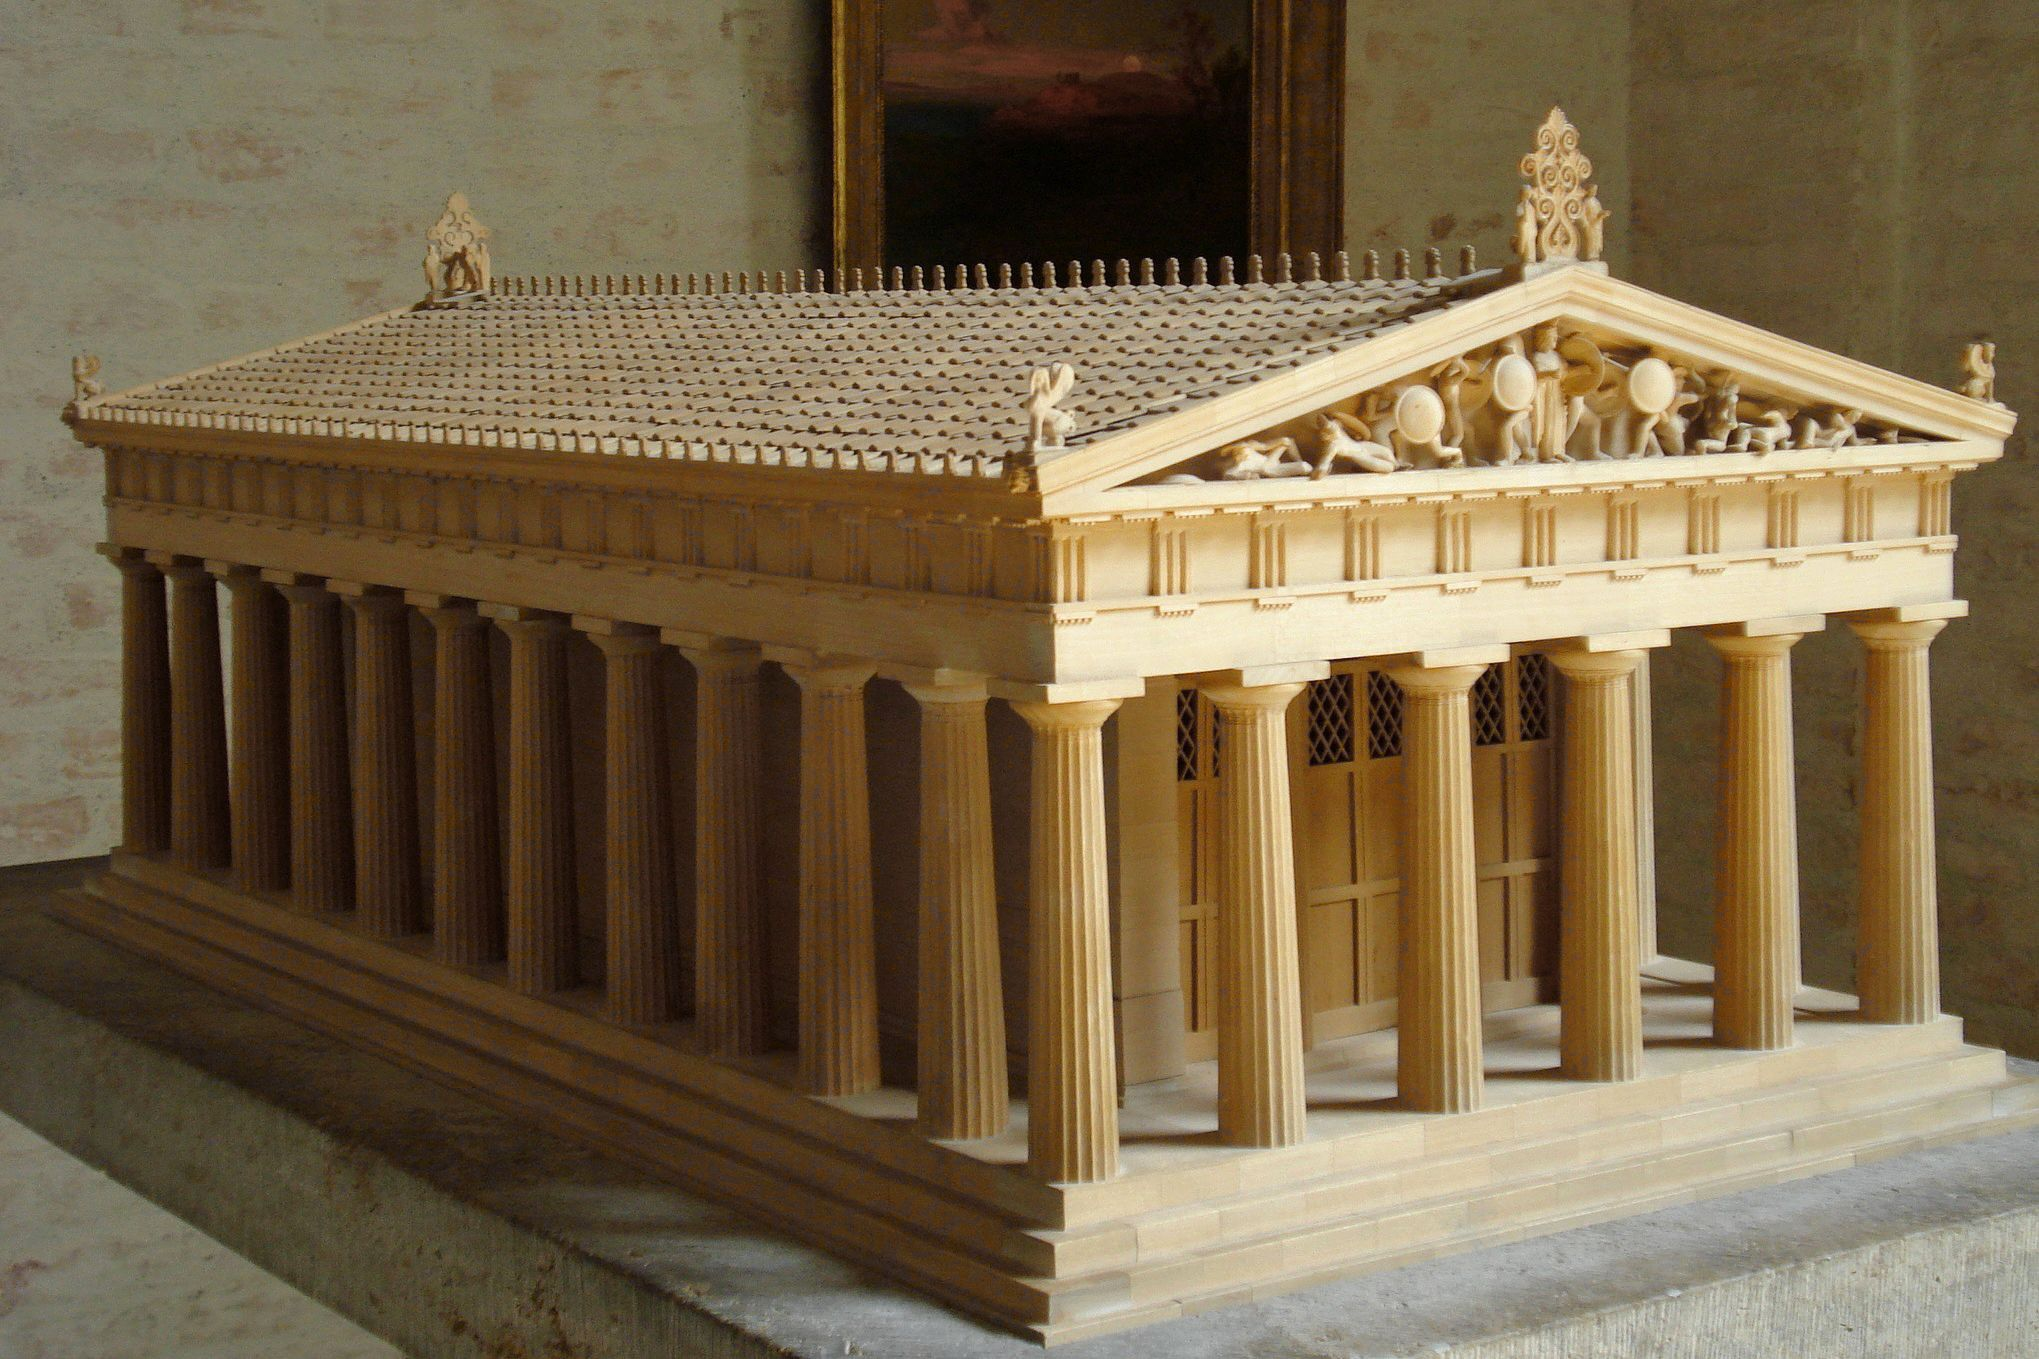 Archaic Temples Restored Model Of Aphaia Temple Aegina